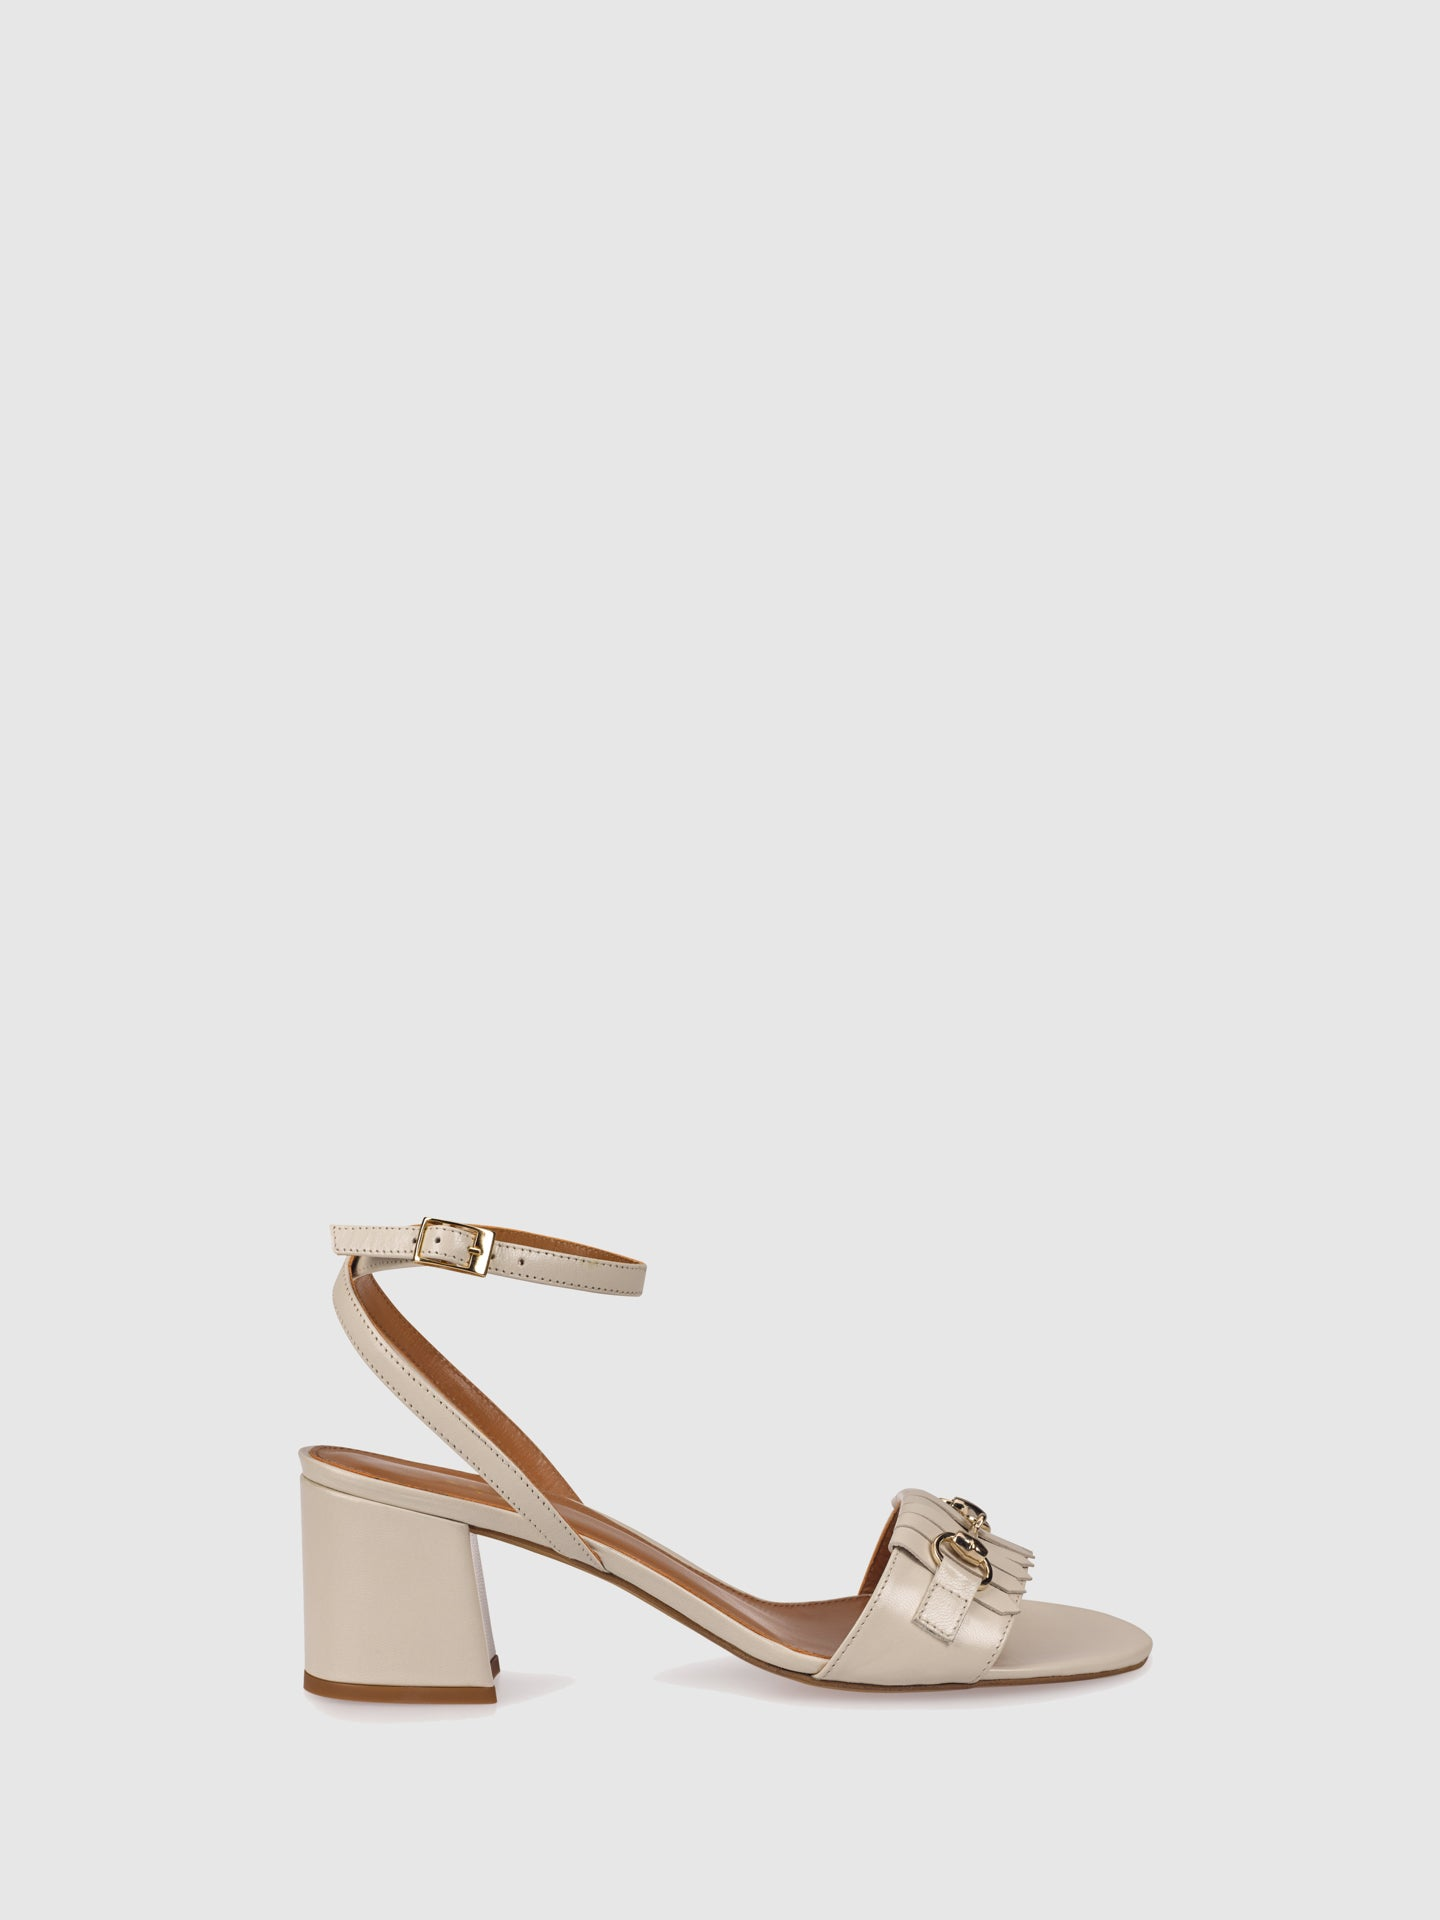 Palazzo VII White Ankle Strap Sandals